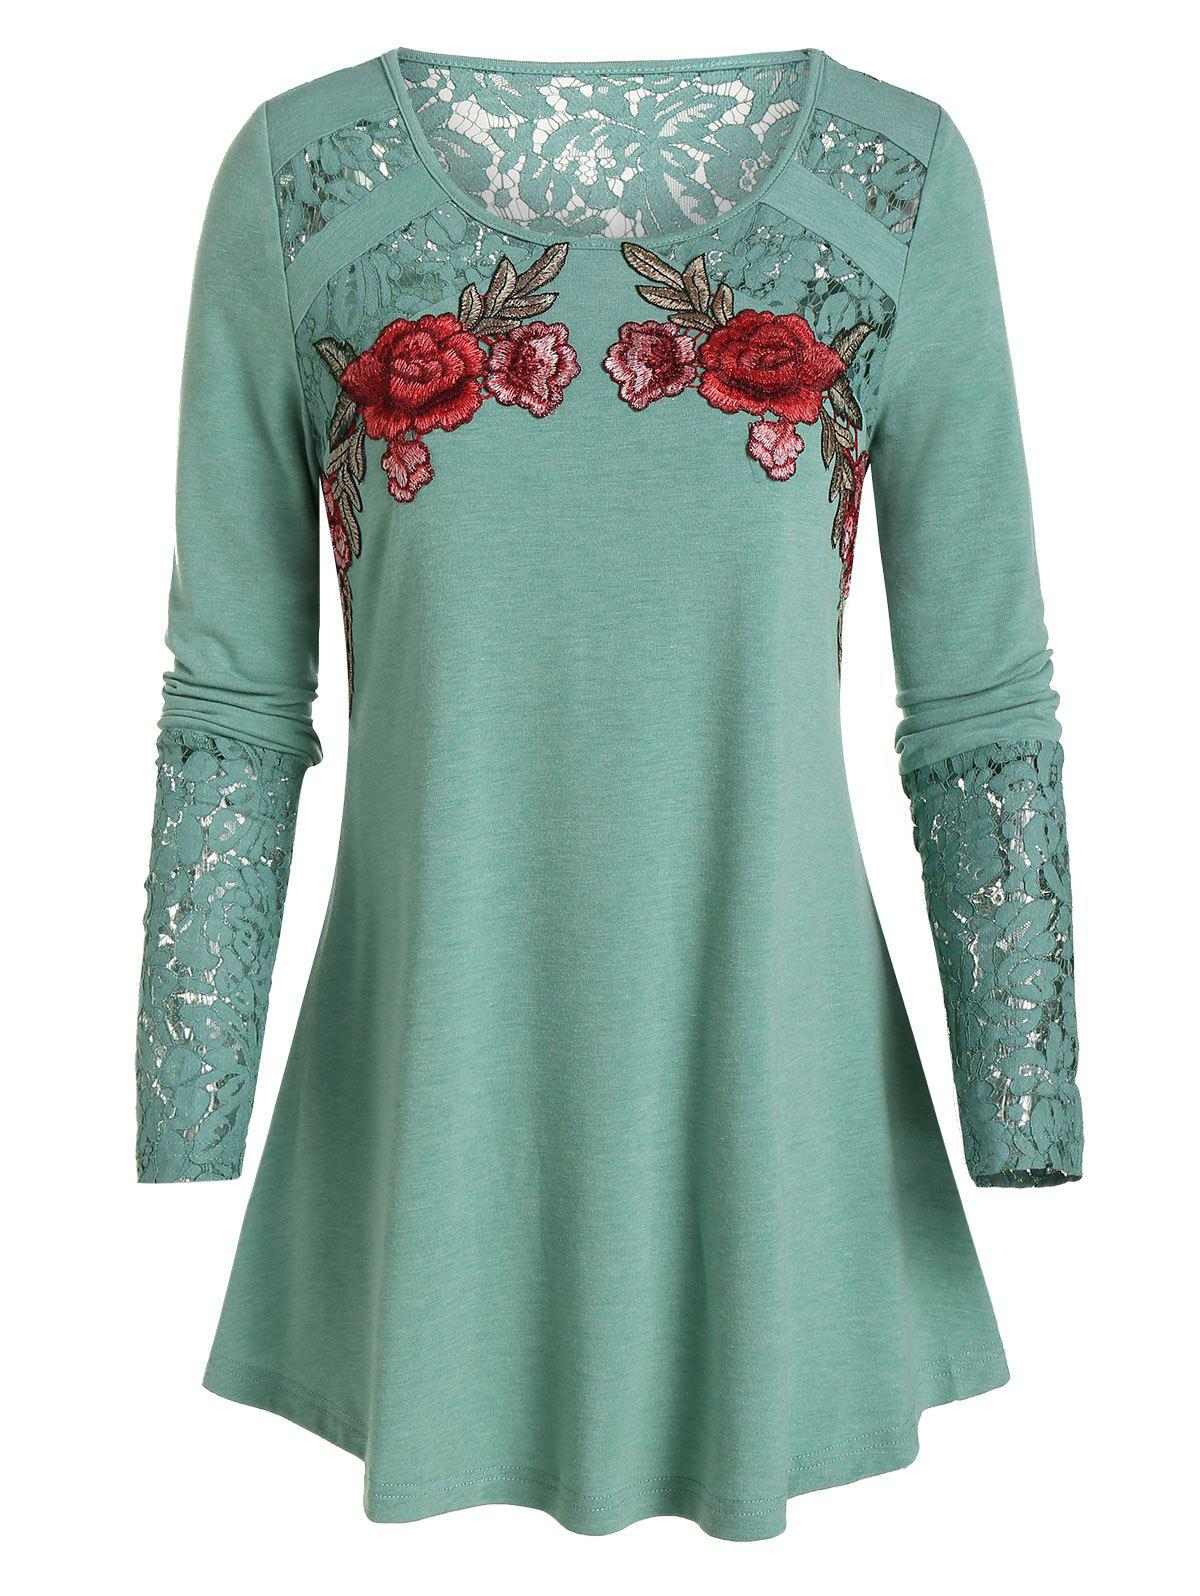 Floral Embroidery Lace Patchwork T-shirt - SEA GREEN L